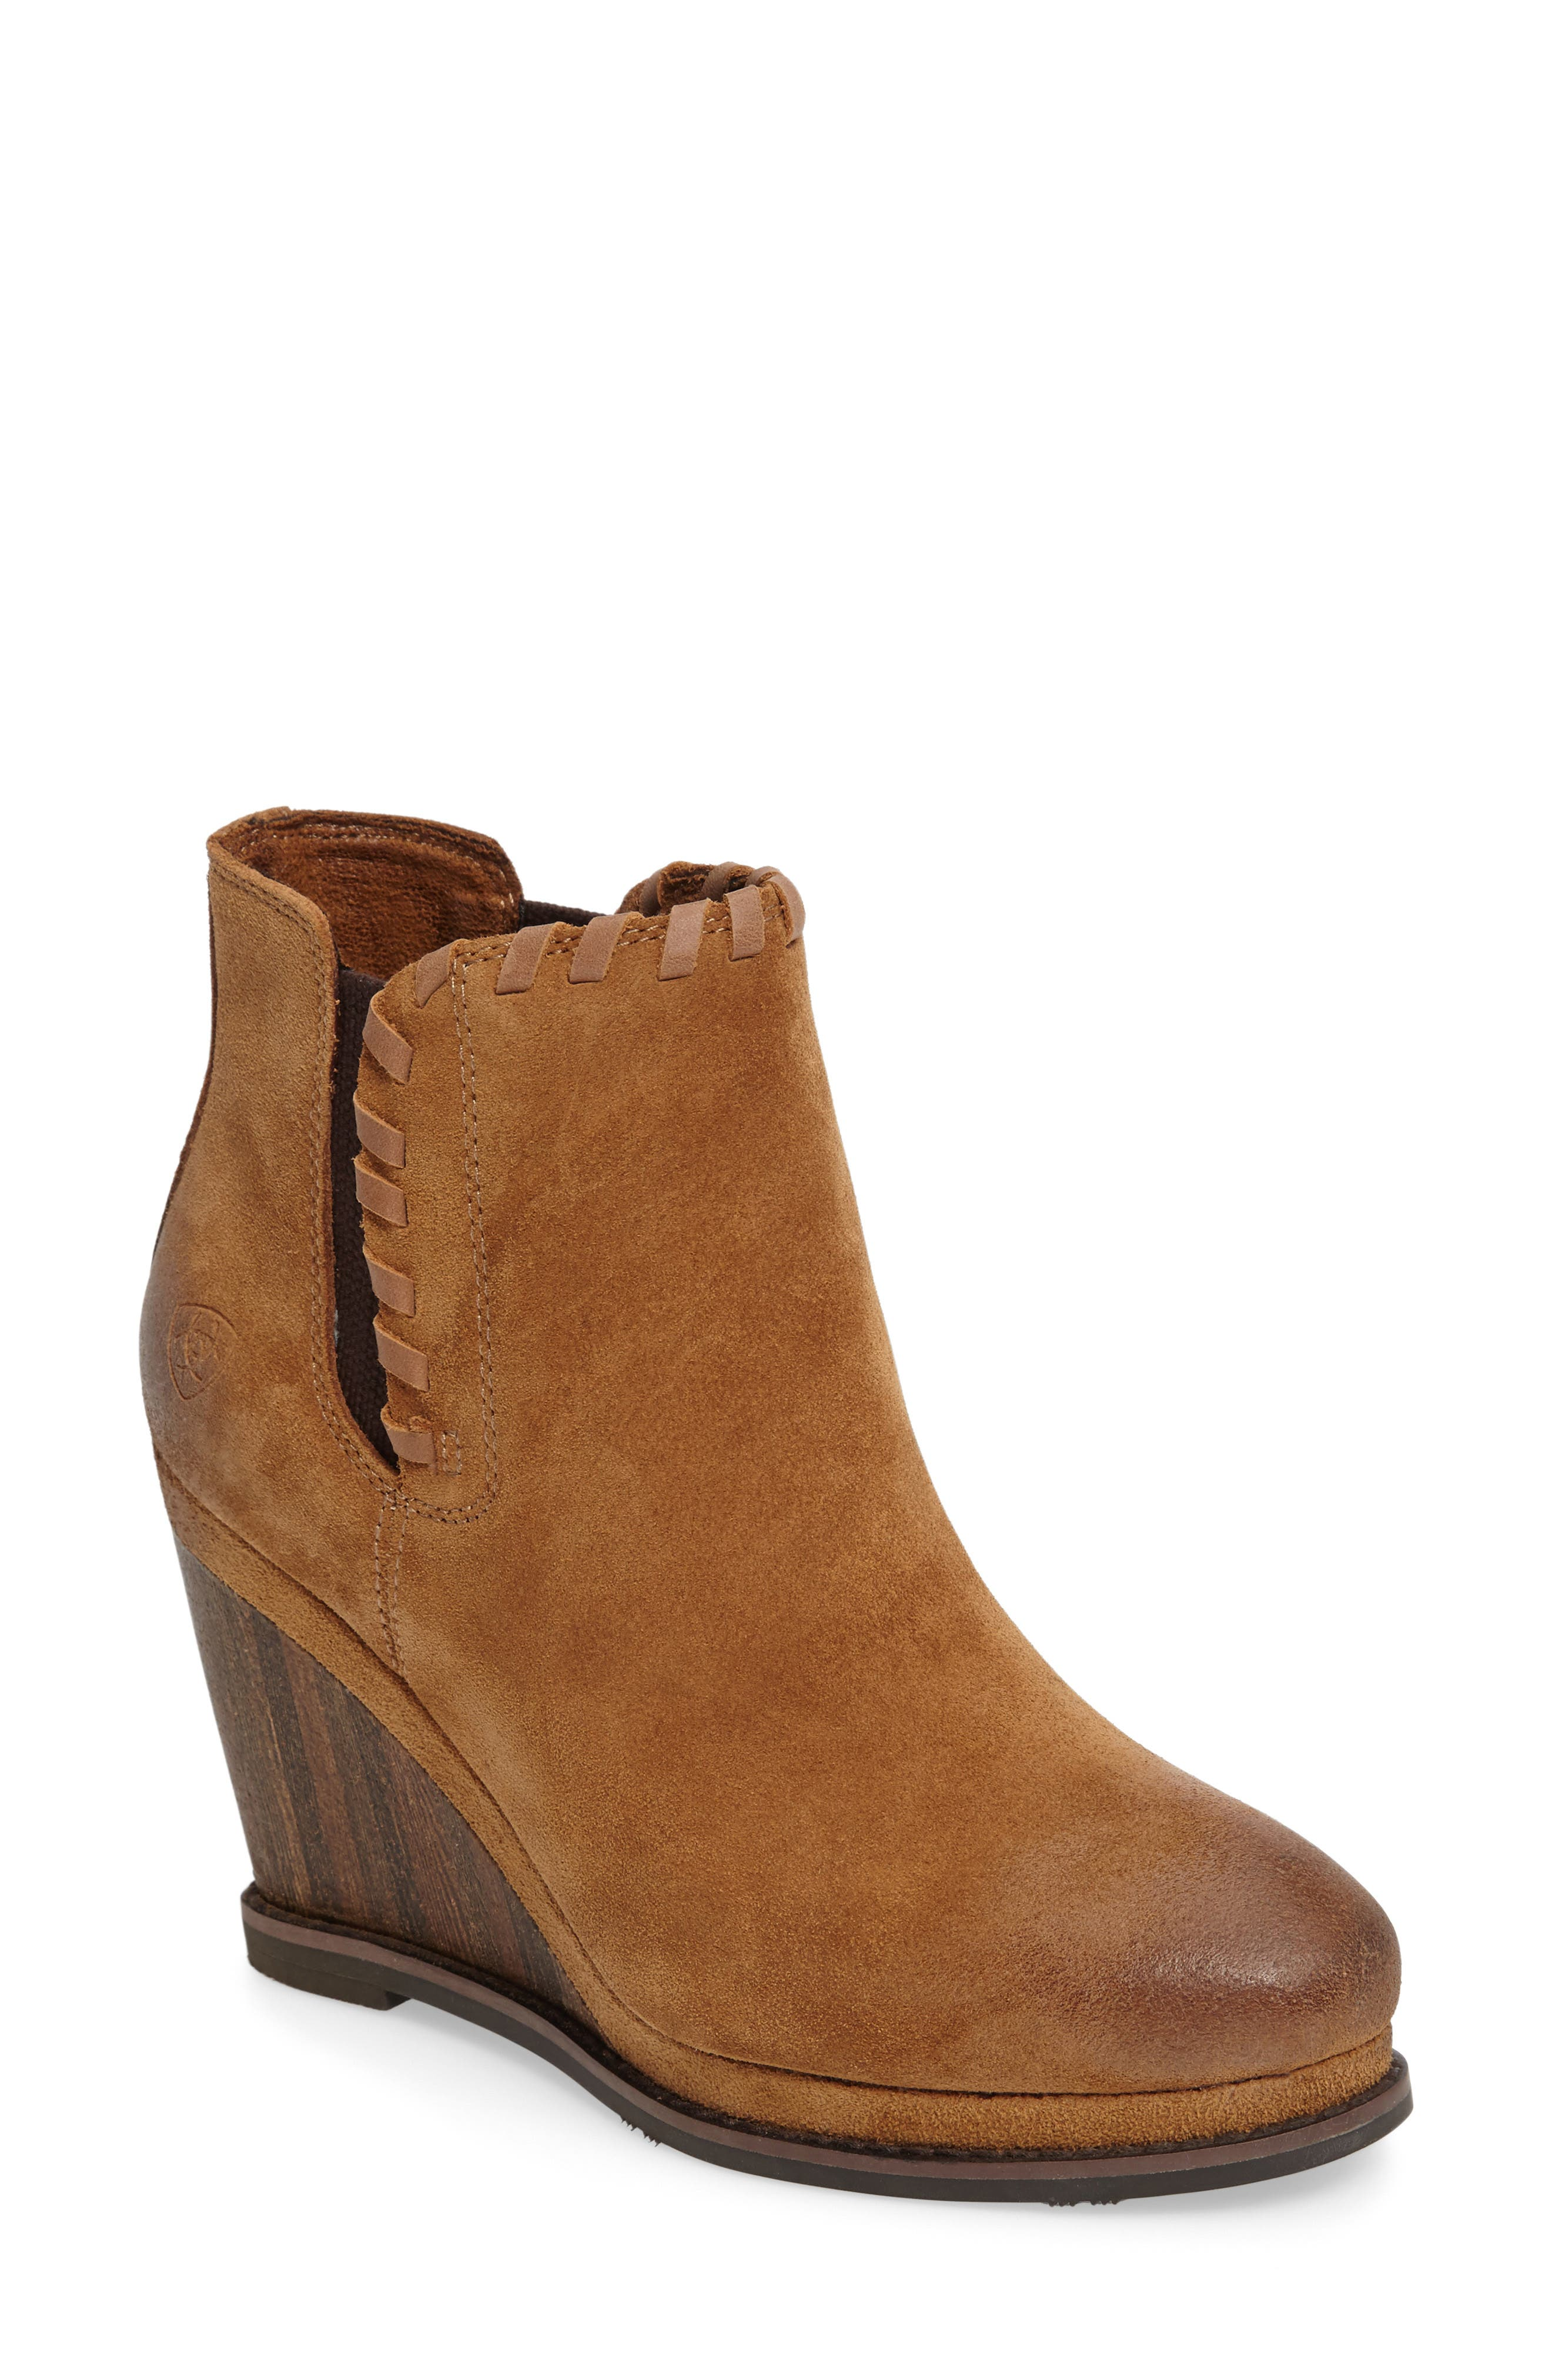 Belle Wedge Bootie,                             Main thumbnail 1, color,                             SAND LEATHER